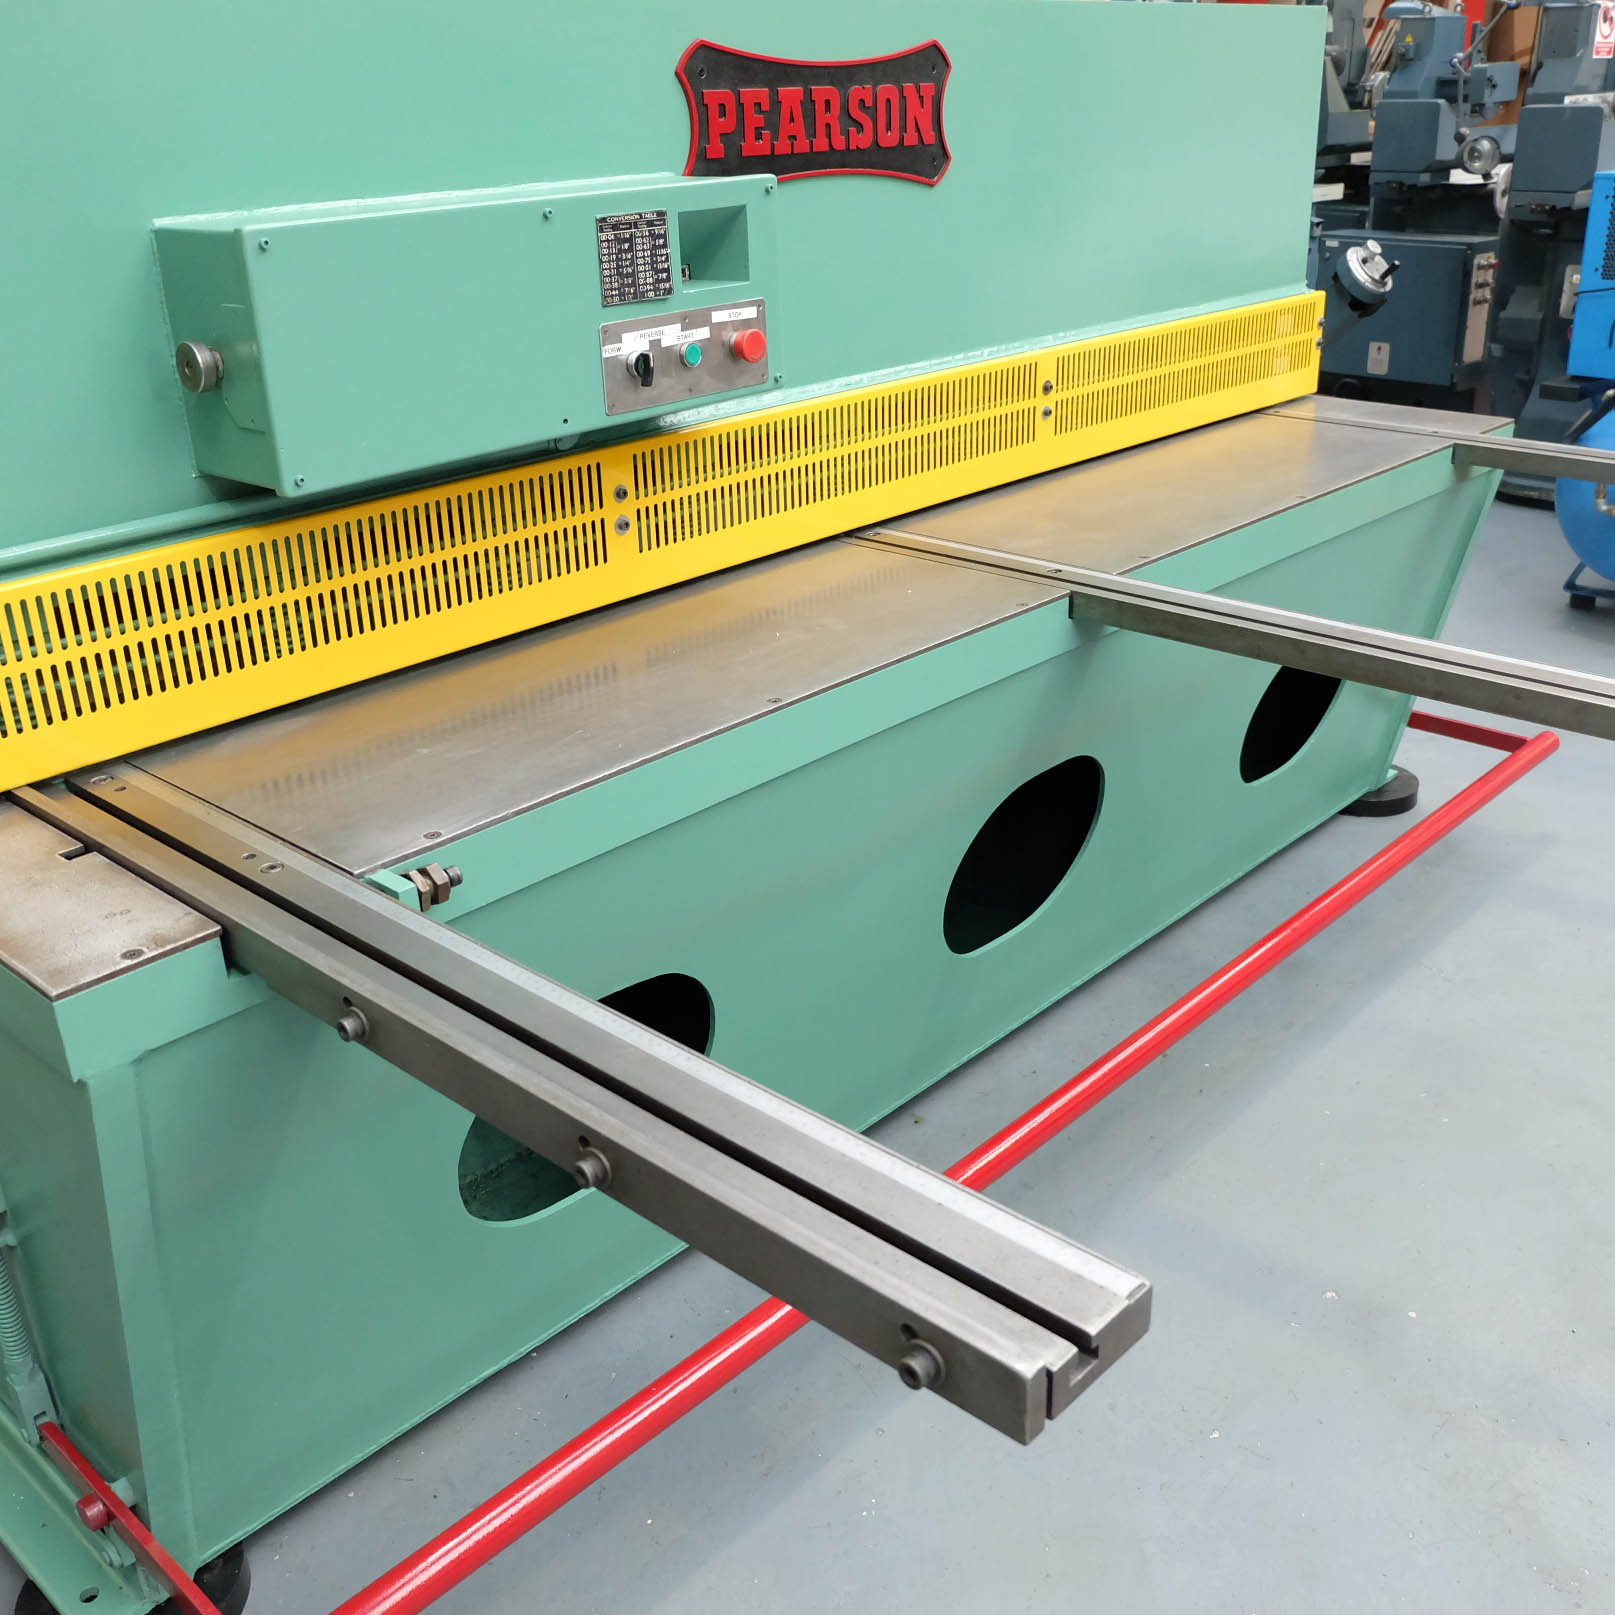 Pearson Type 8 x 25 Hydraulic Guillotine. - Image 2 of 7